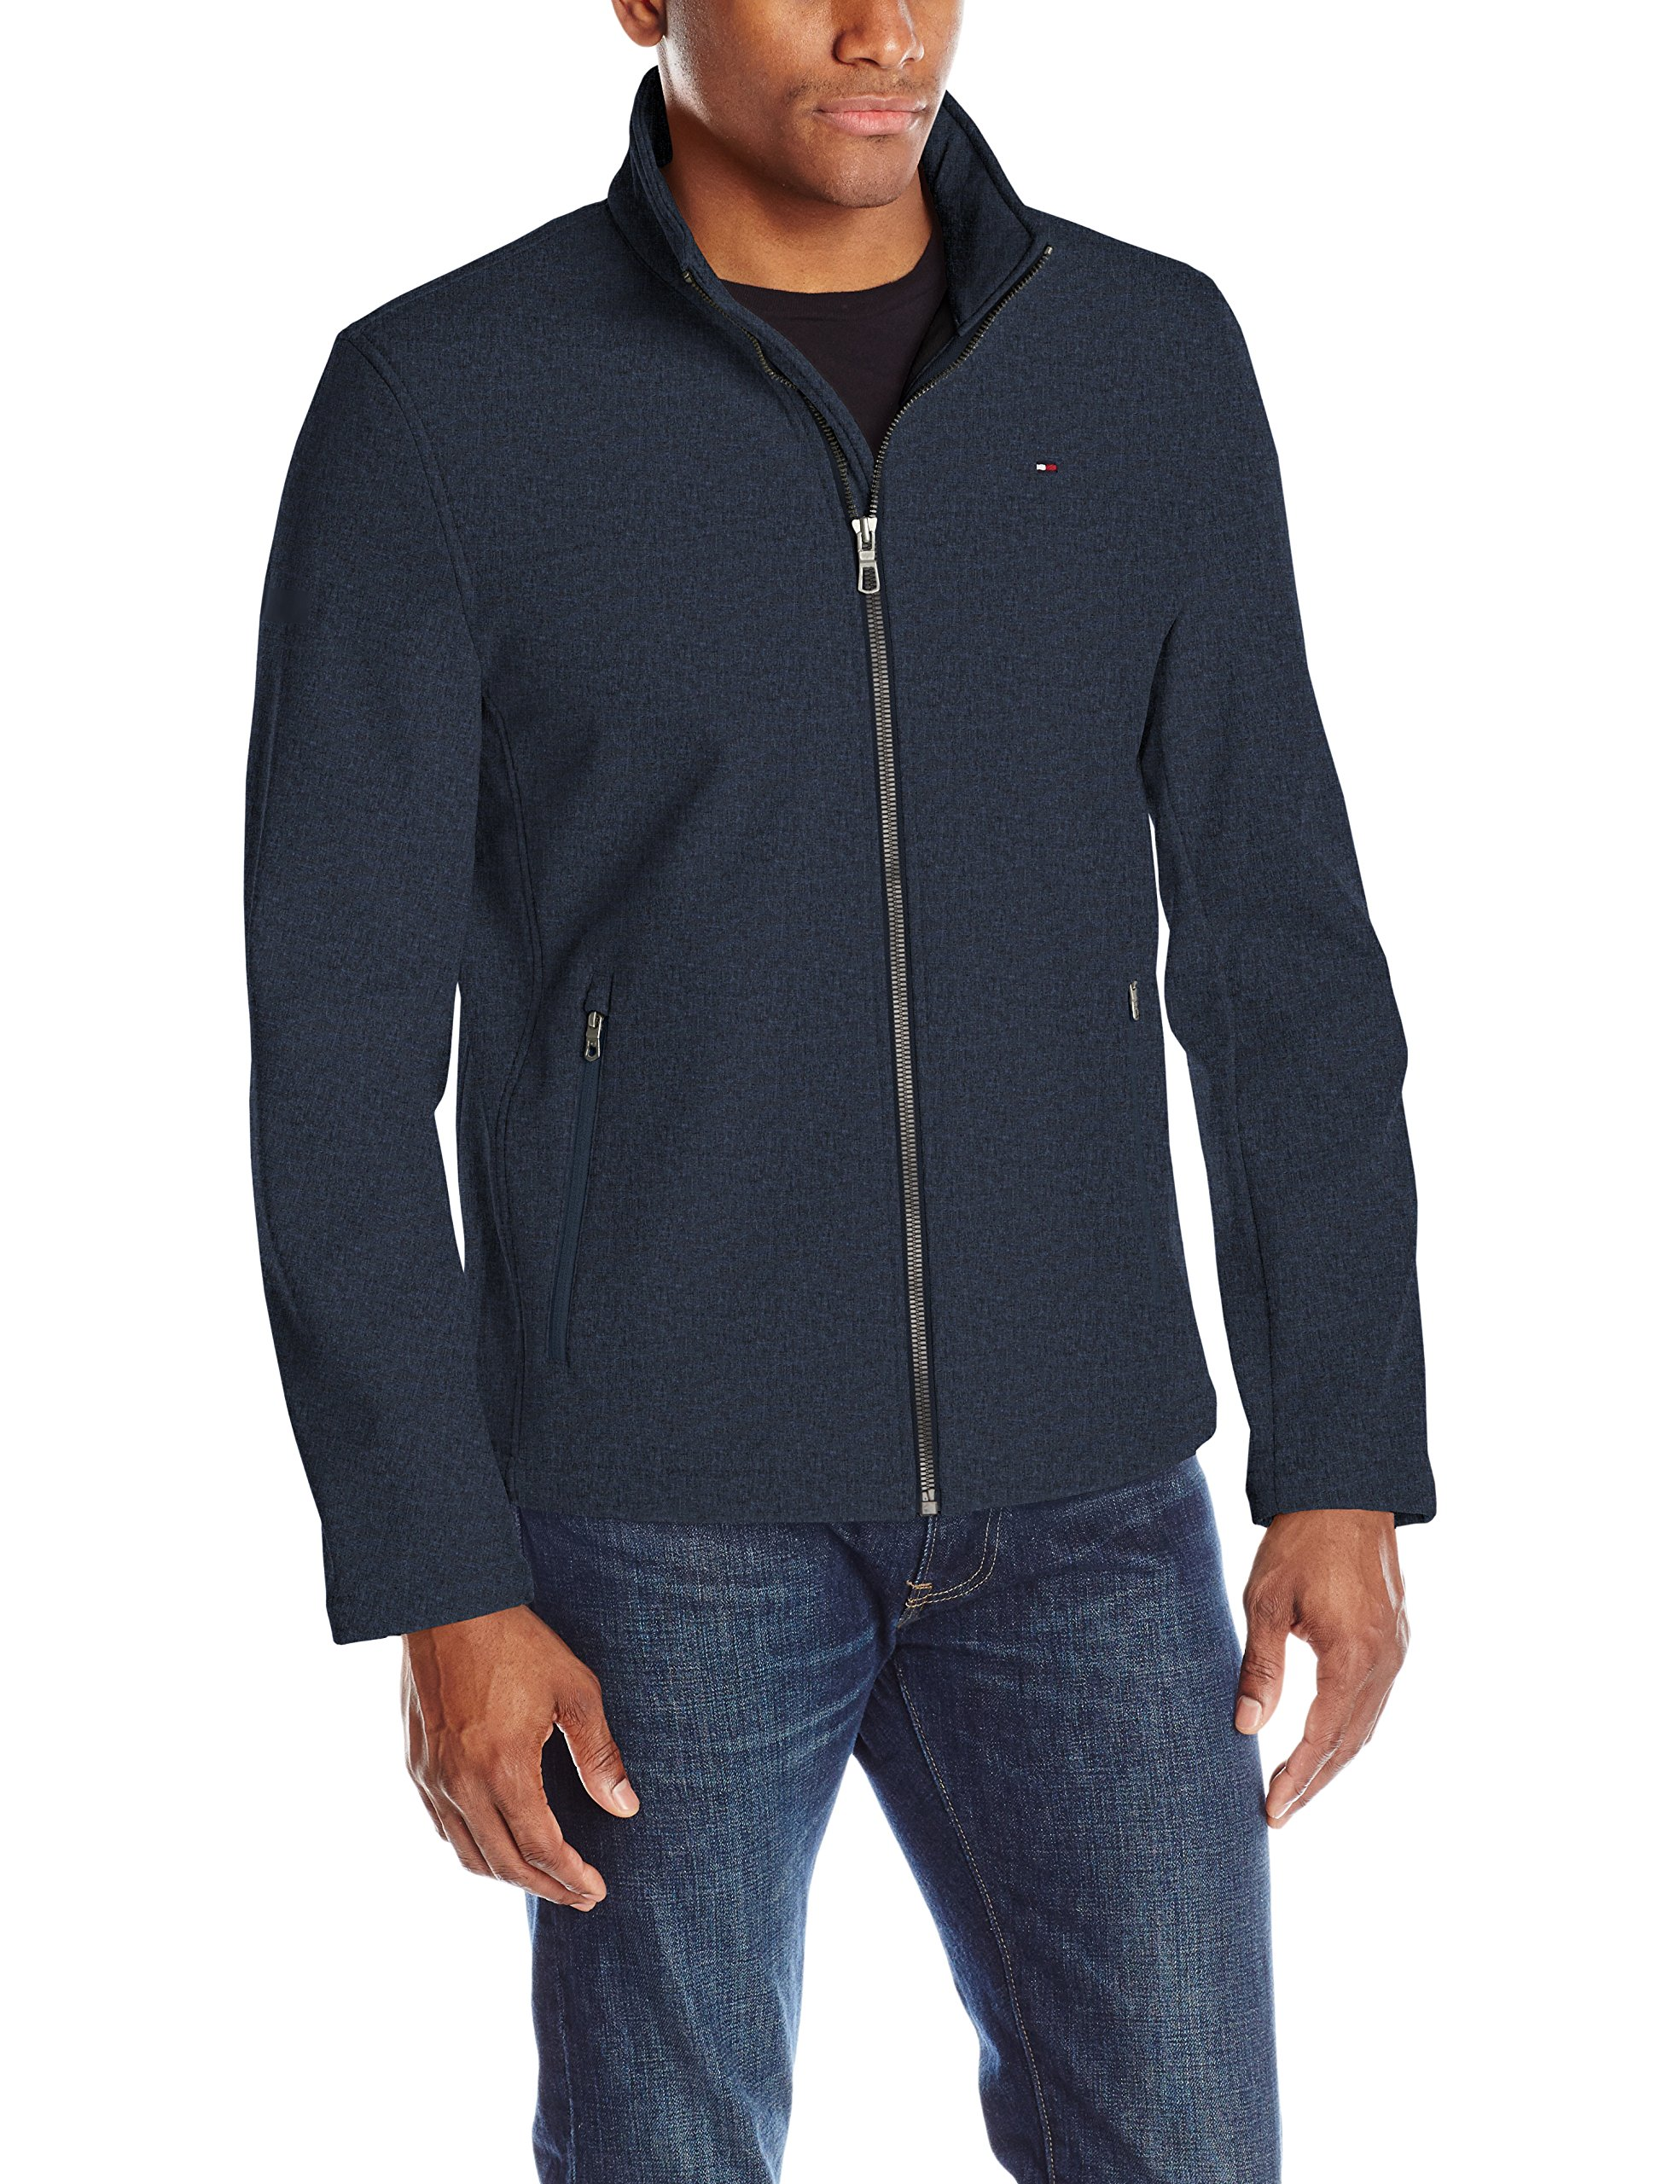 Tommy Hilfiger Men's Classic Soft Shell Jacket, Heather Navy, X-Large by Tommy Hilfiger